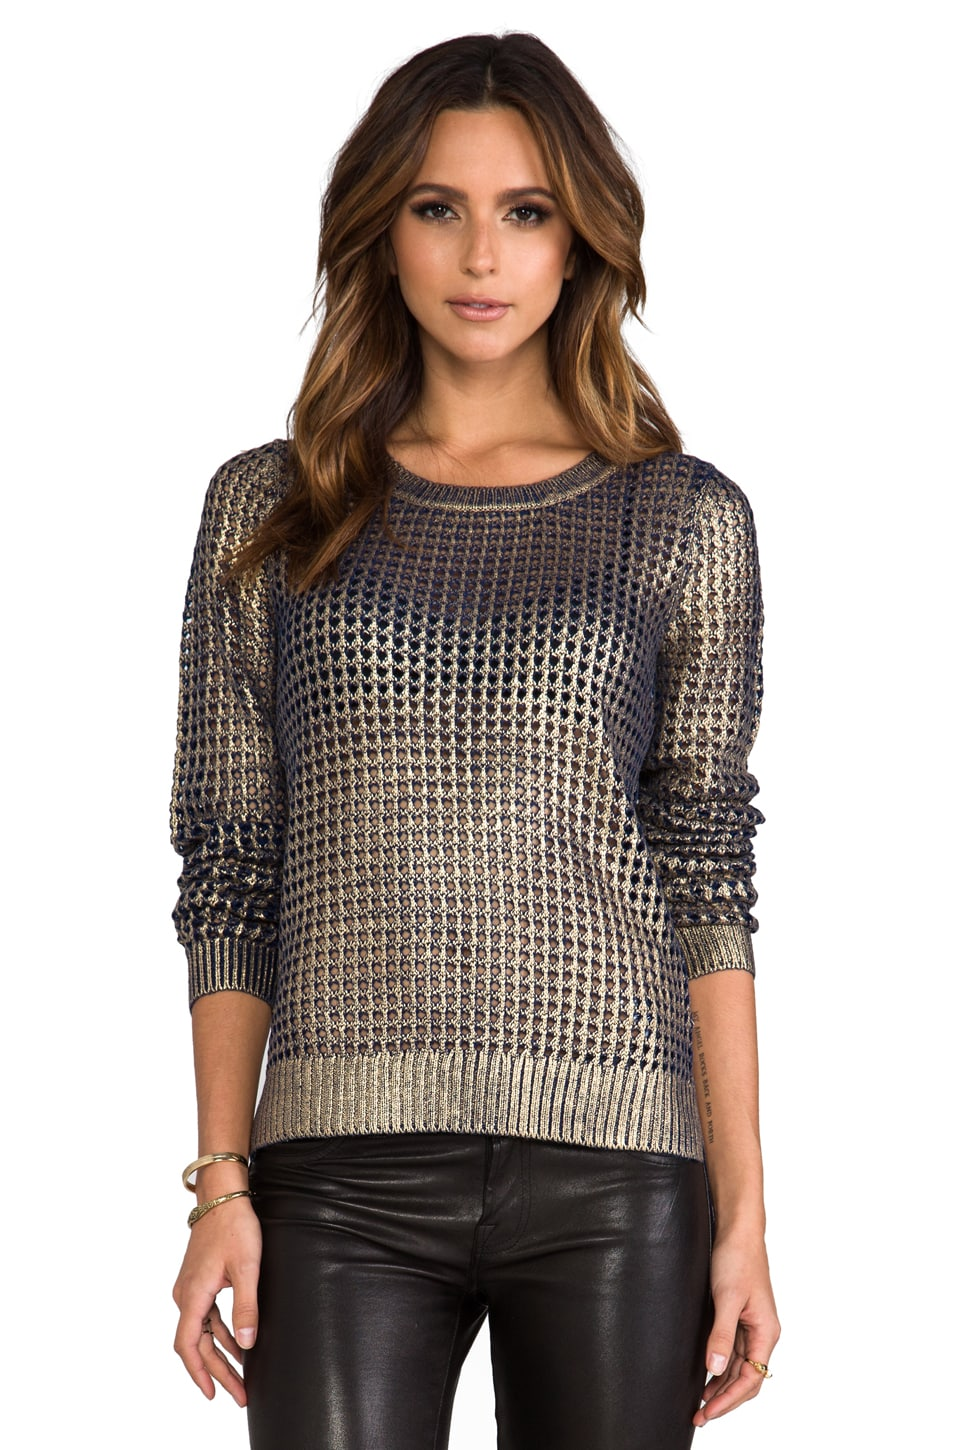 BB Dakota Bardot Metallic Printed Sweater in Navy/Gold